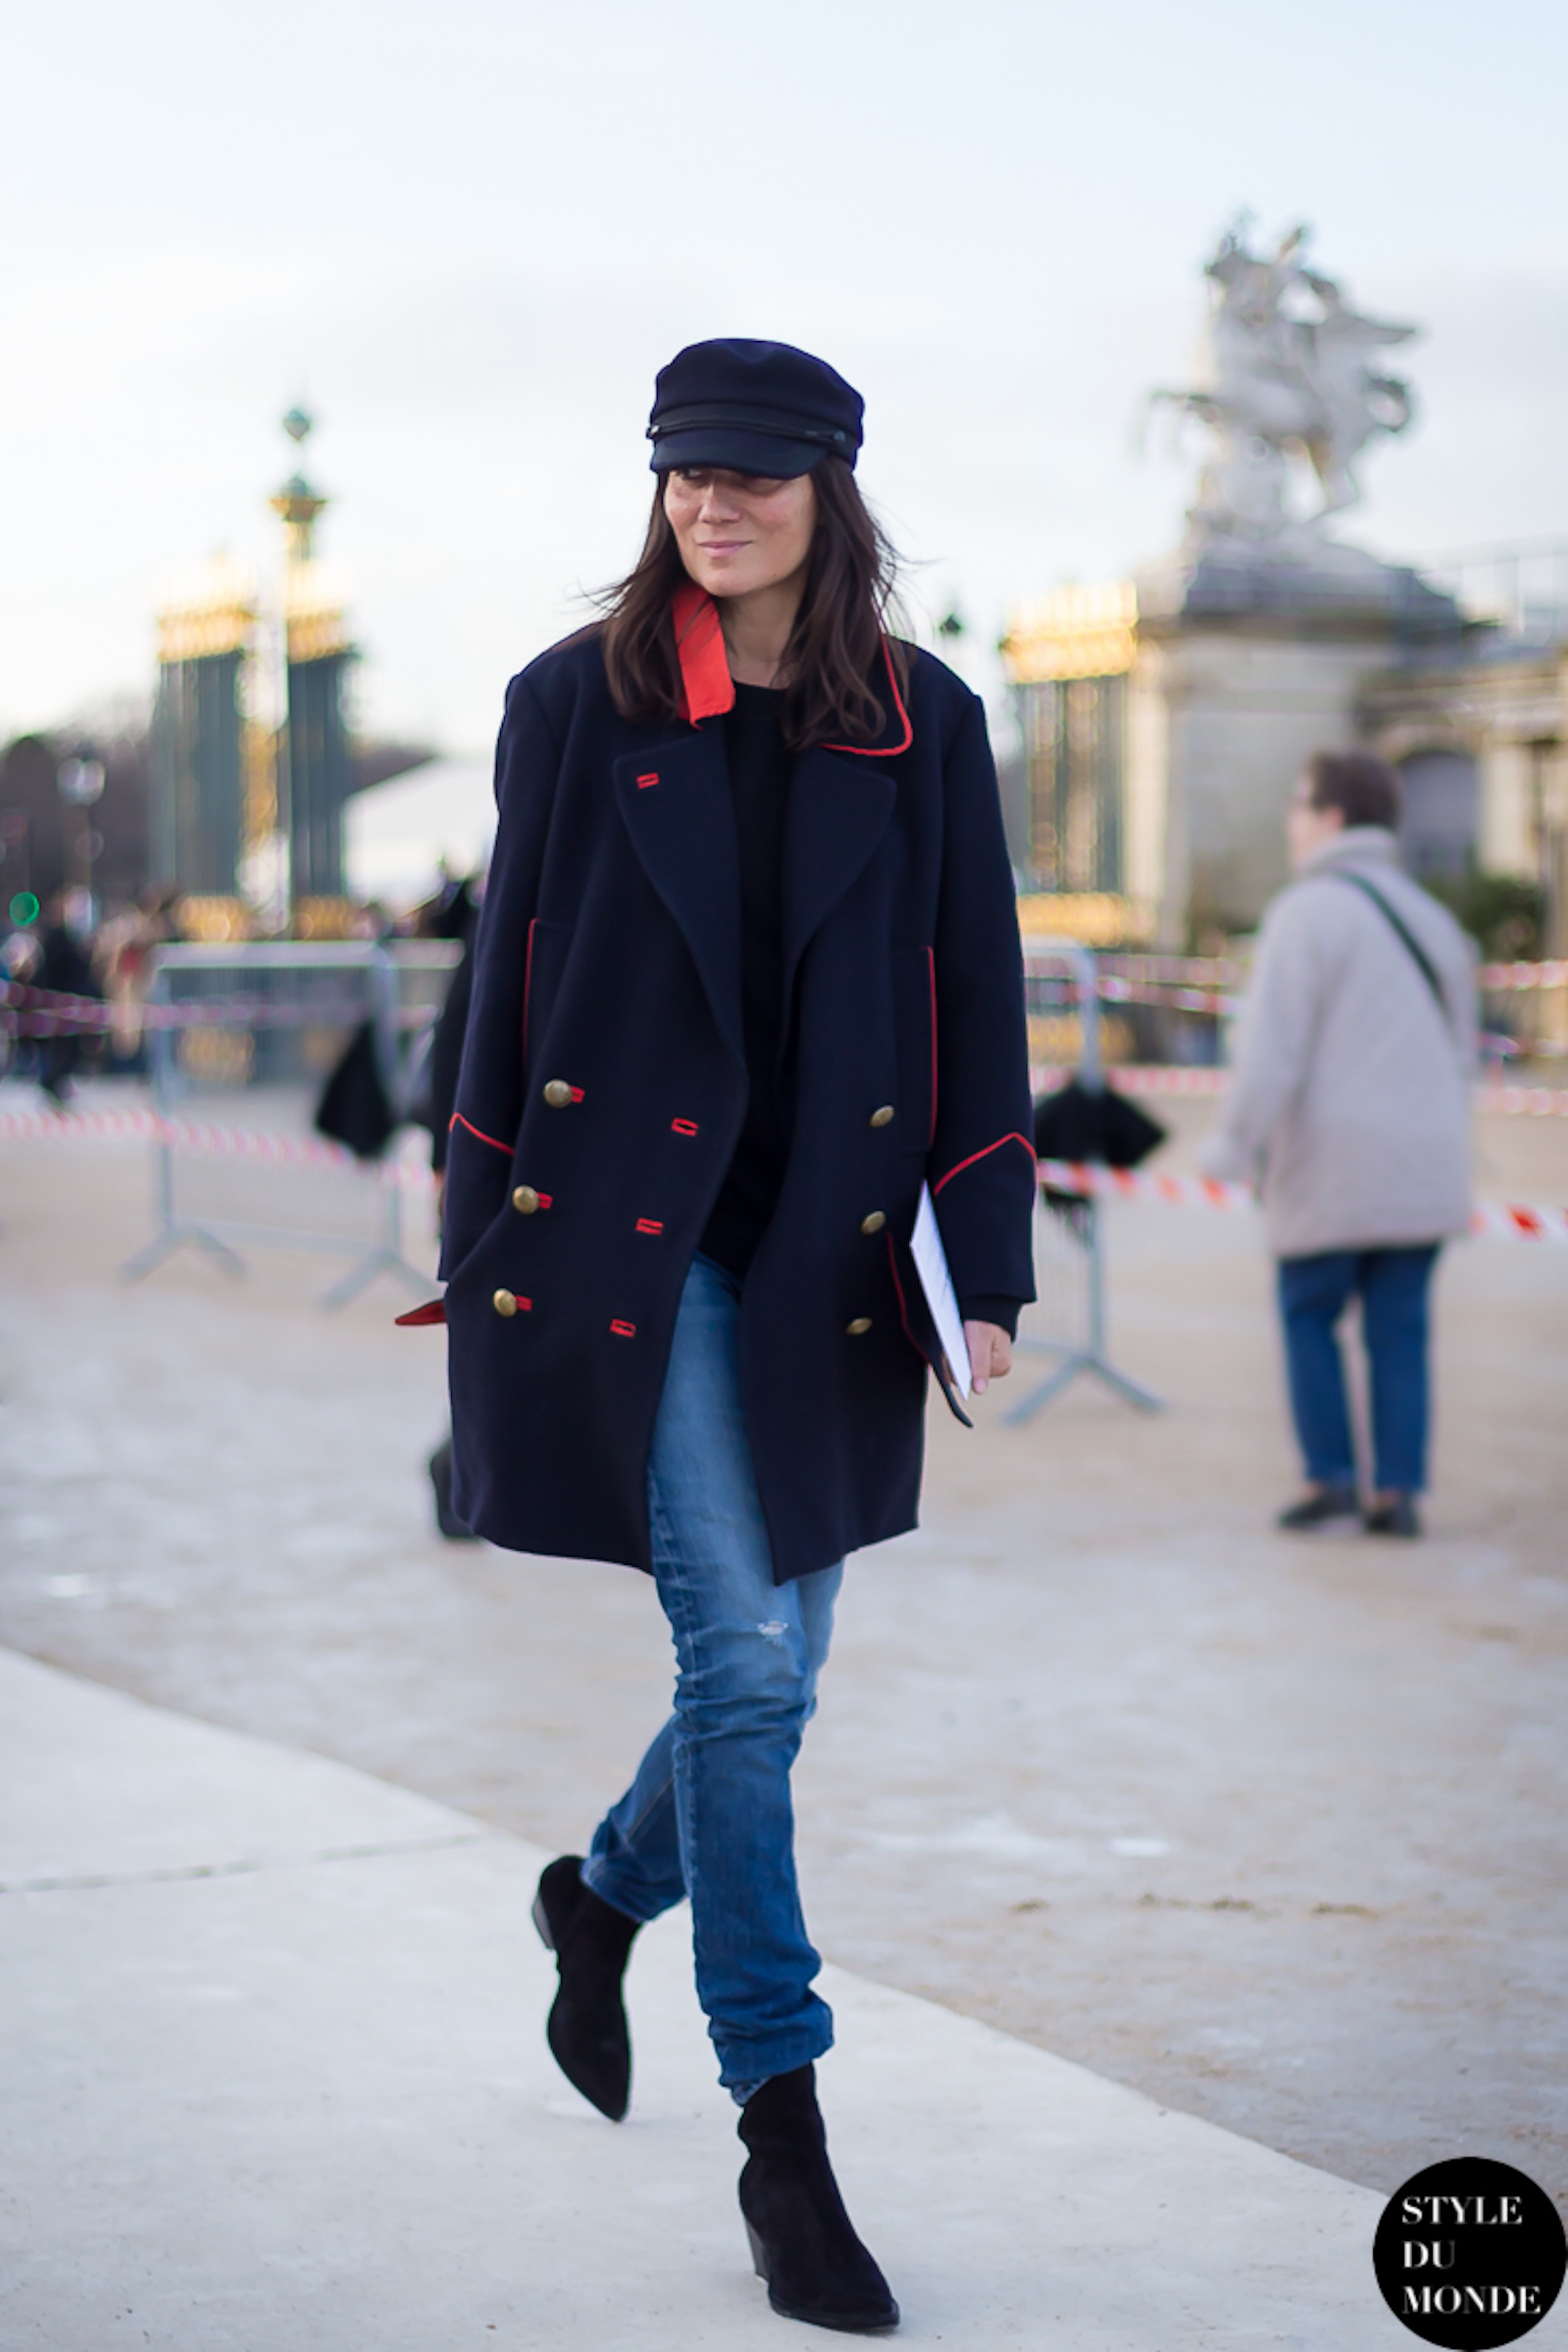 Emmanuelle-Alt-by-STYLEDUMONDE-Street-Style-Fashion-Blog_MG_0099